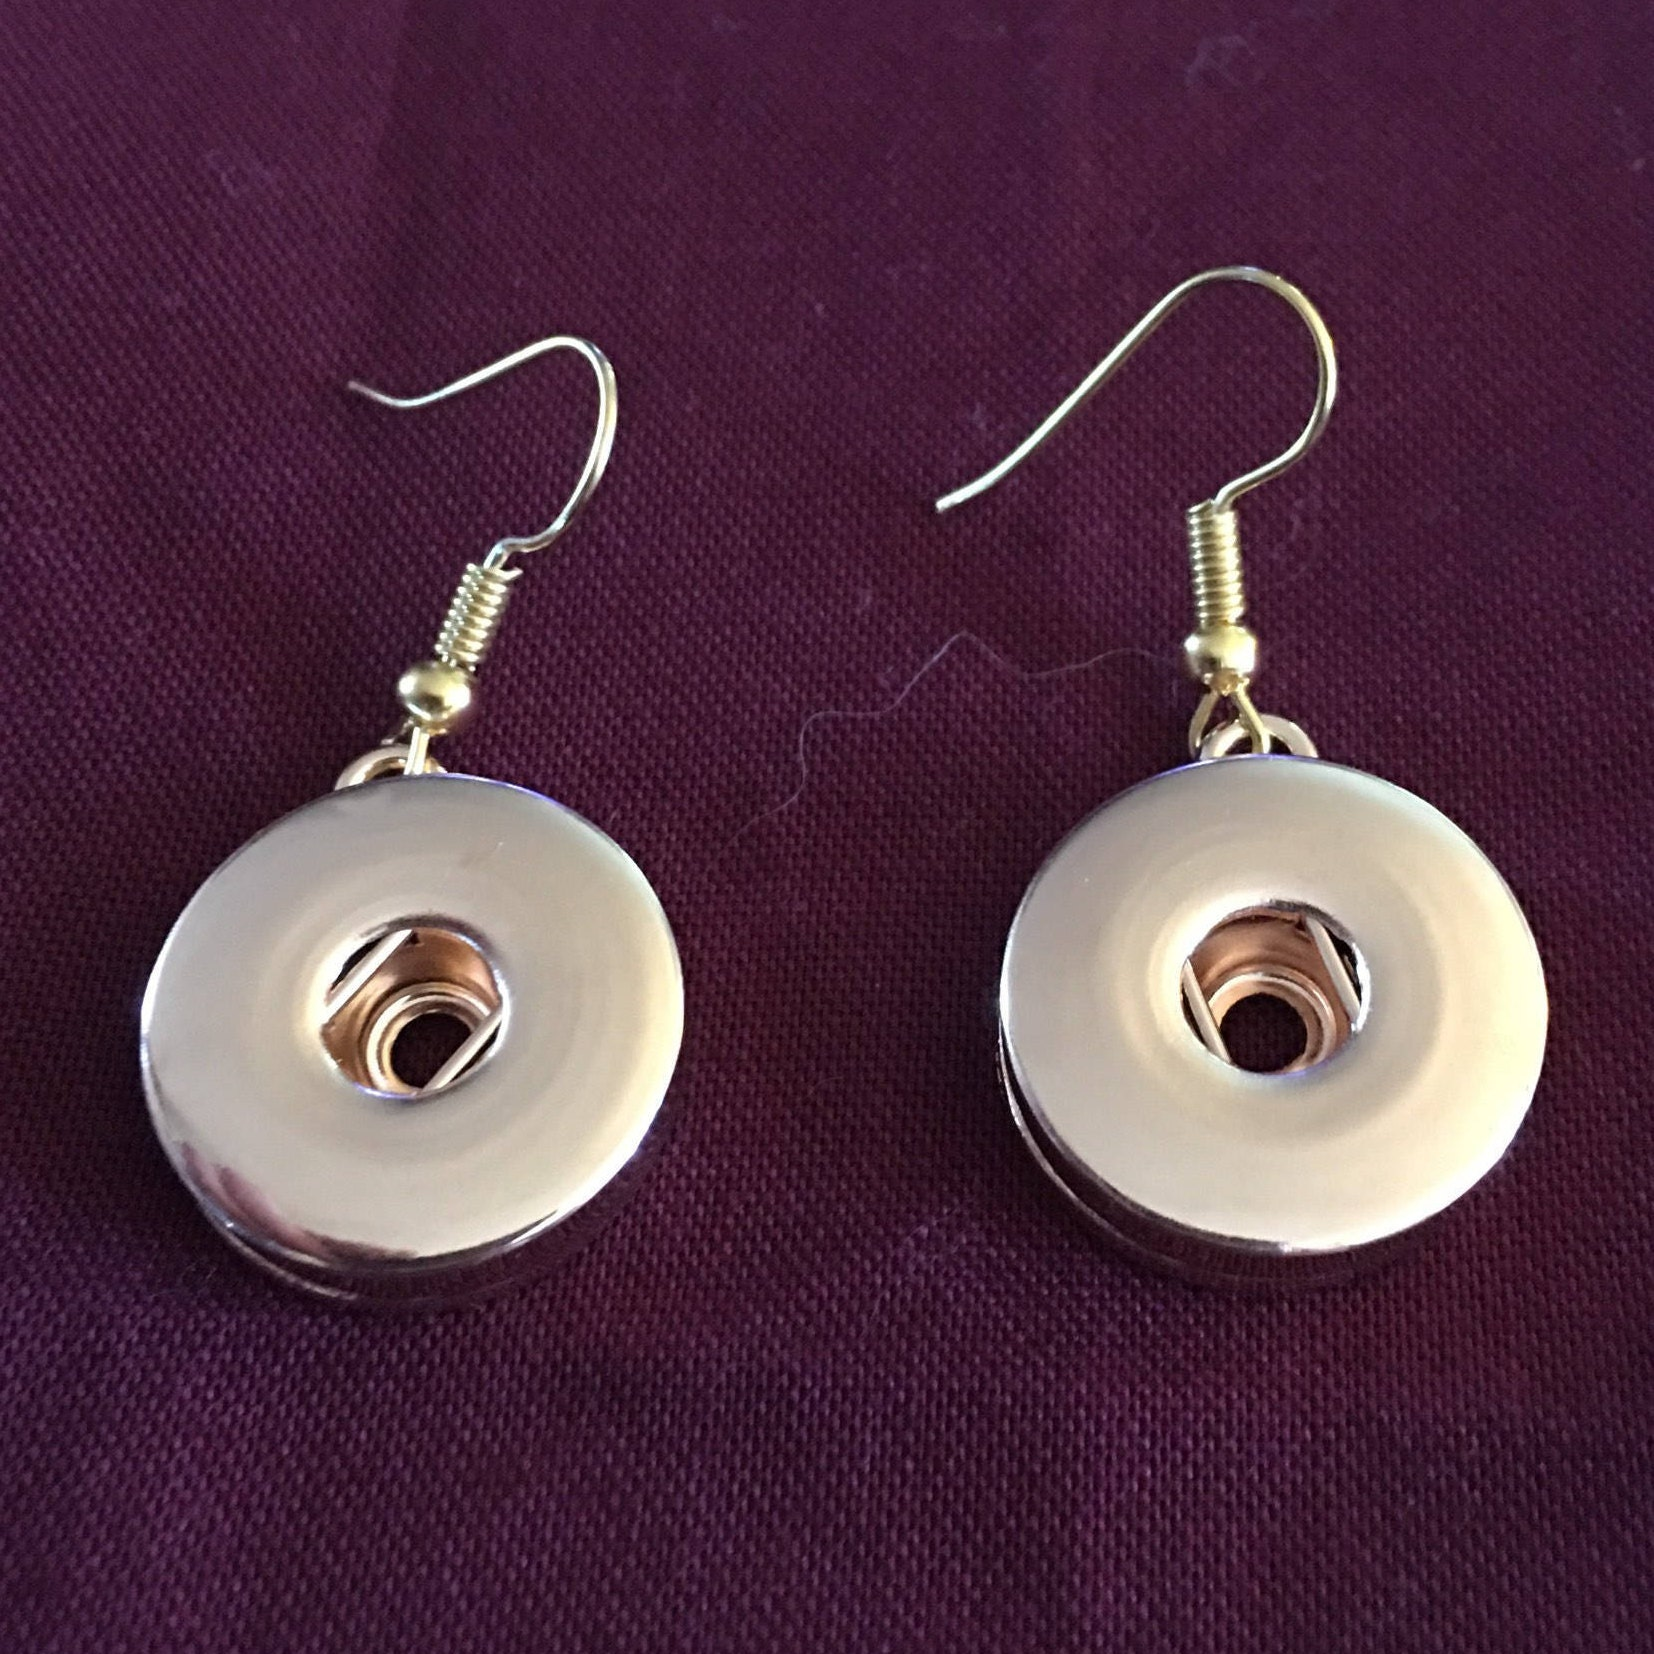 my silver excited the to sterling share pin earrings shop etsy latest addition interchangeable